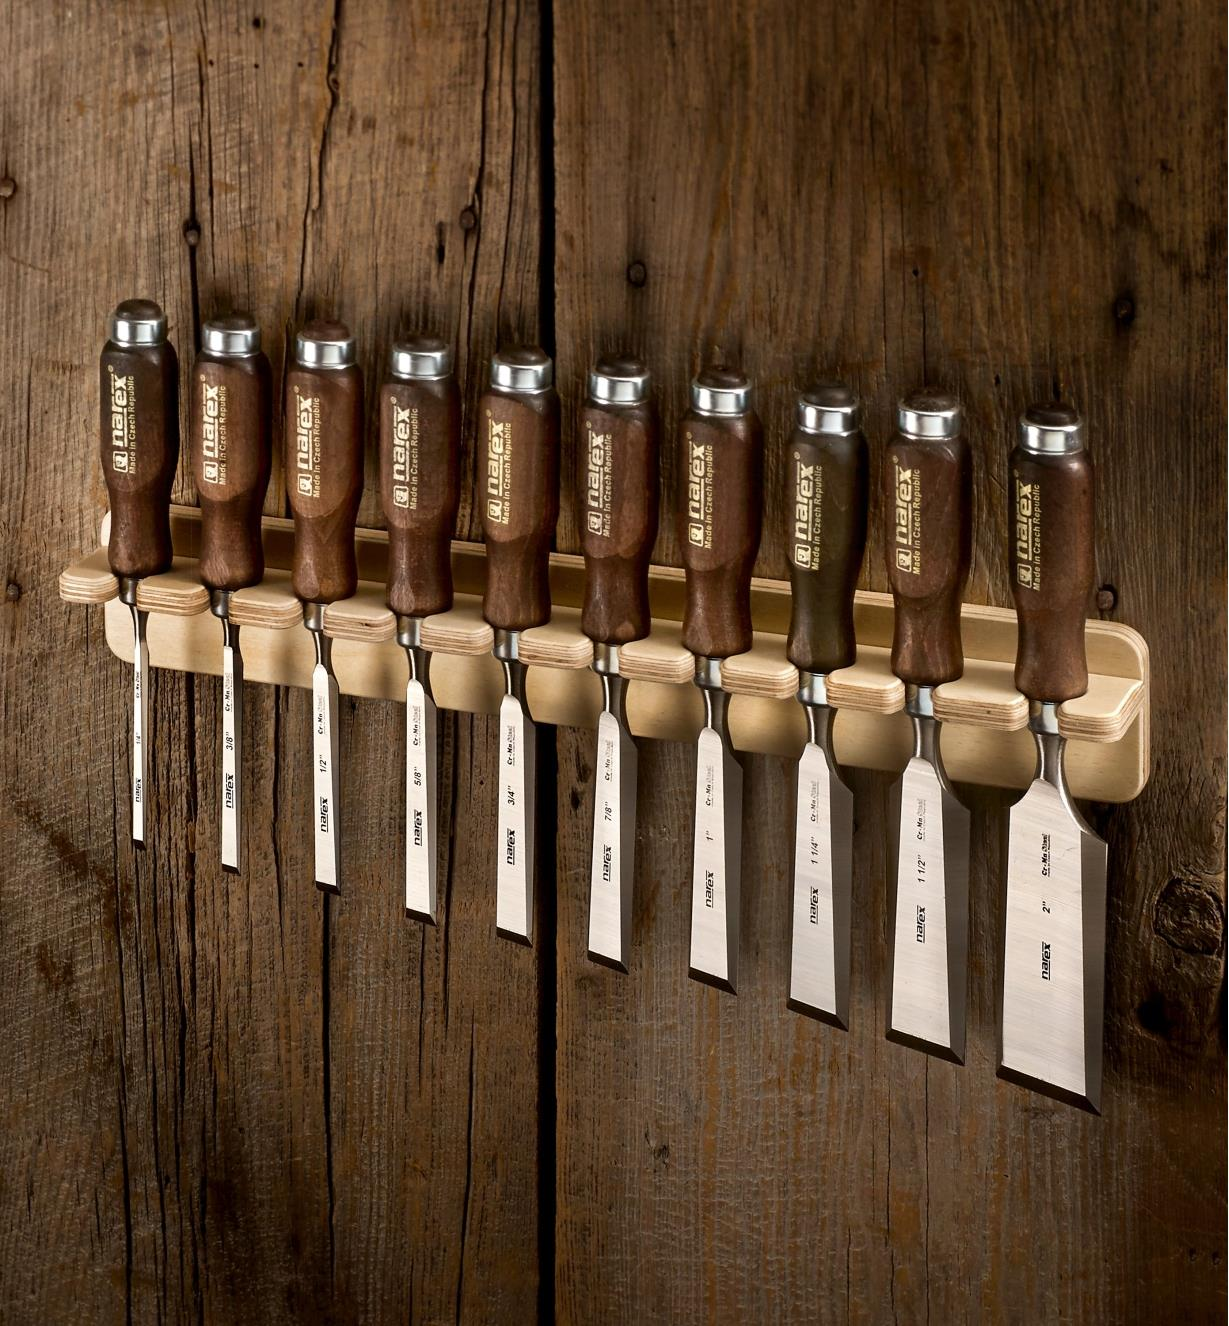 A set of ten Narex bevel-edge chisels held in a wall-mounted rack